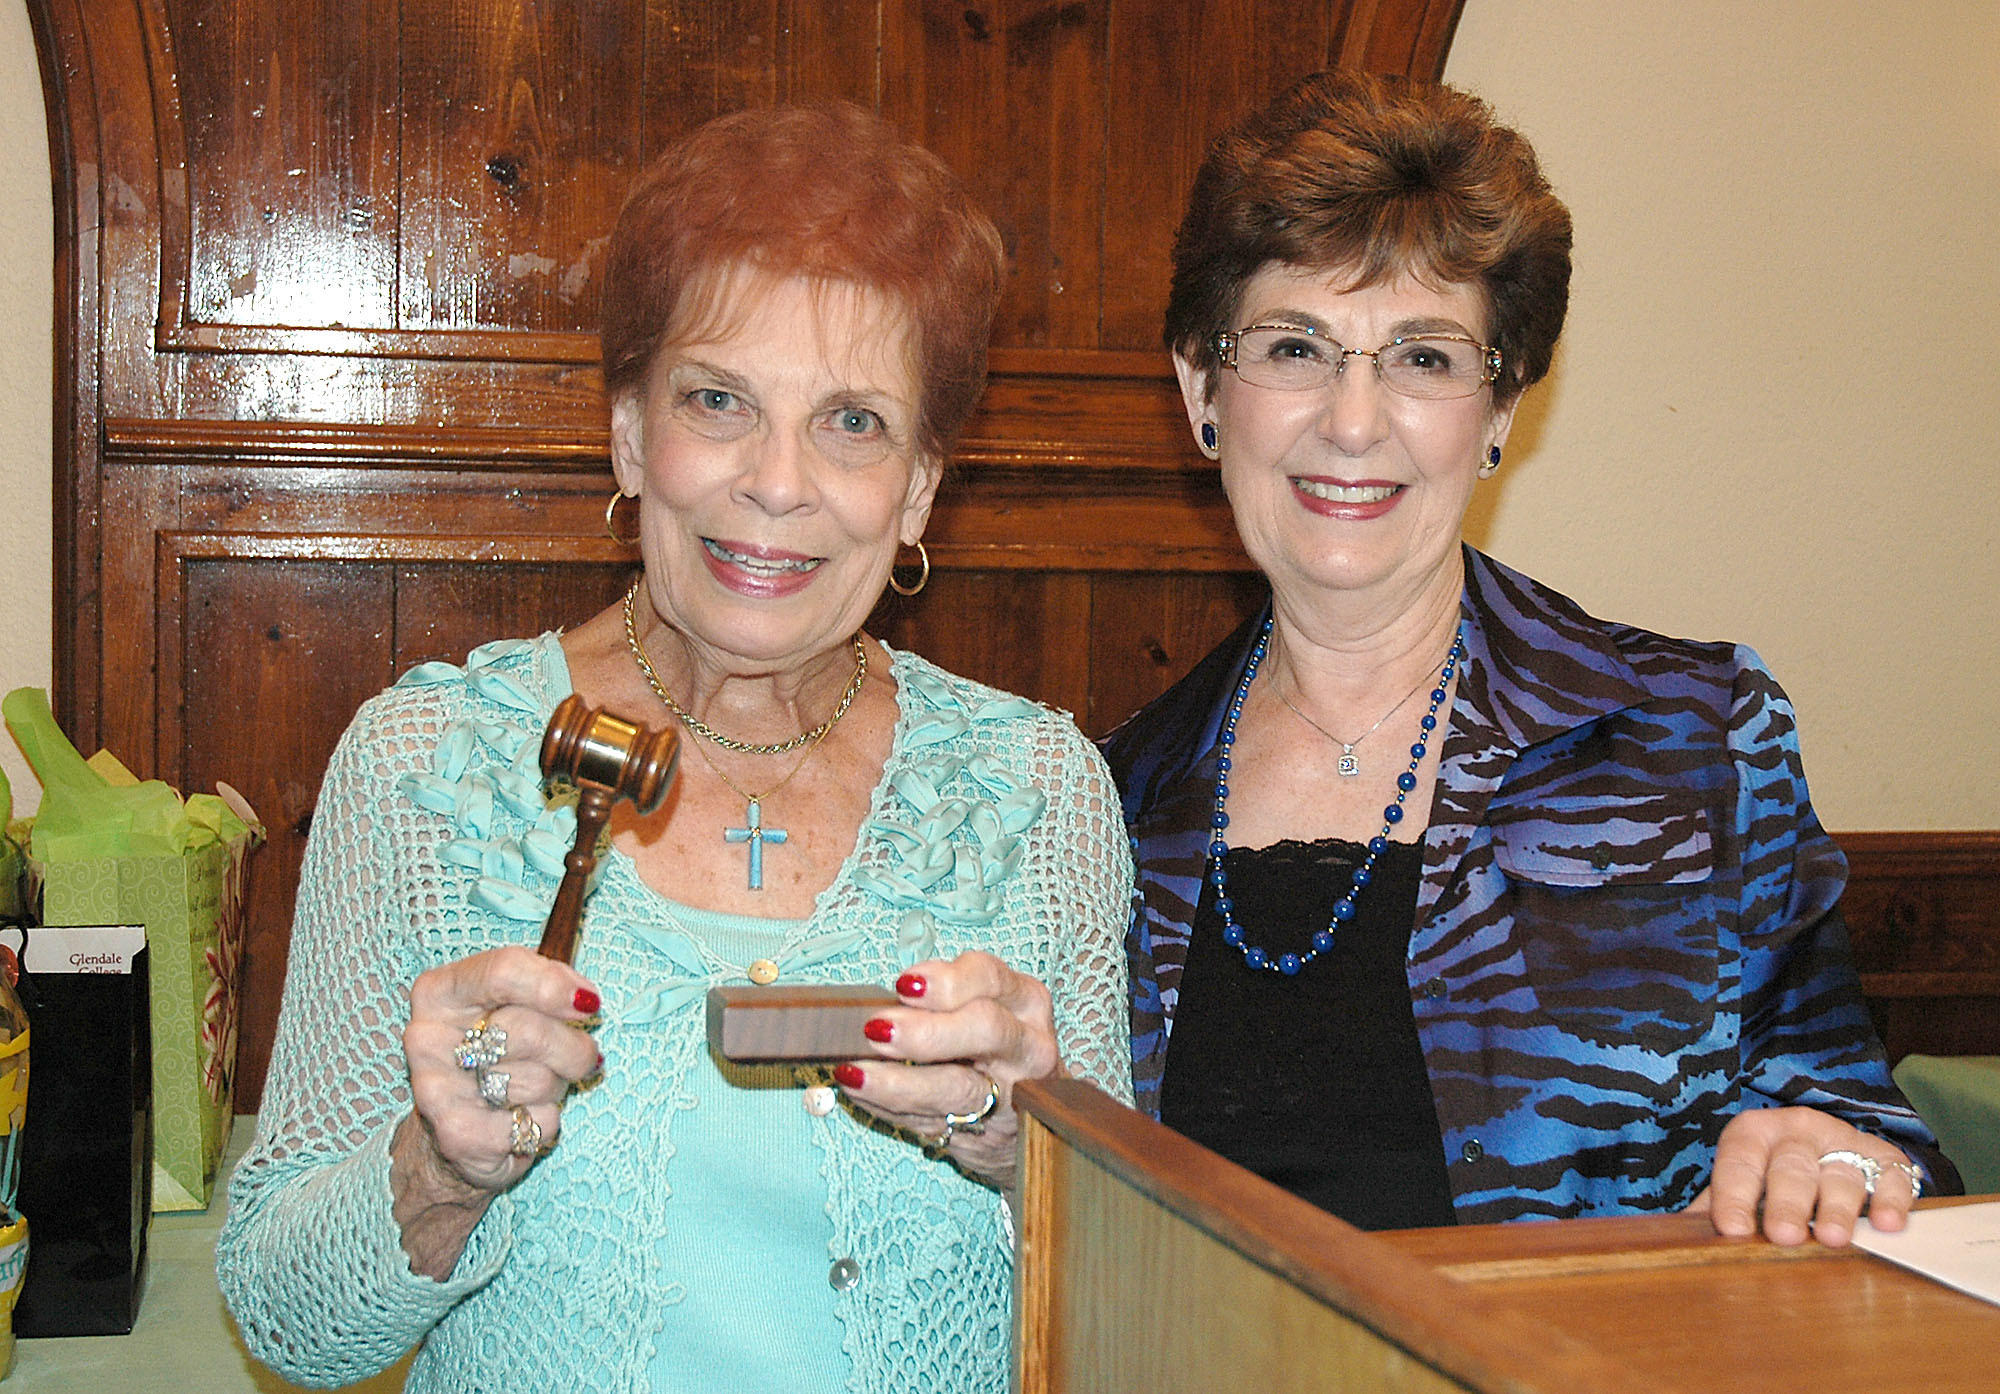 Betty Musacco, left, incoming president of the Patrons Club of Glendale Community College, receives the gavel from outgoing president Carolyn Payne at the Castaway Restaurant.